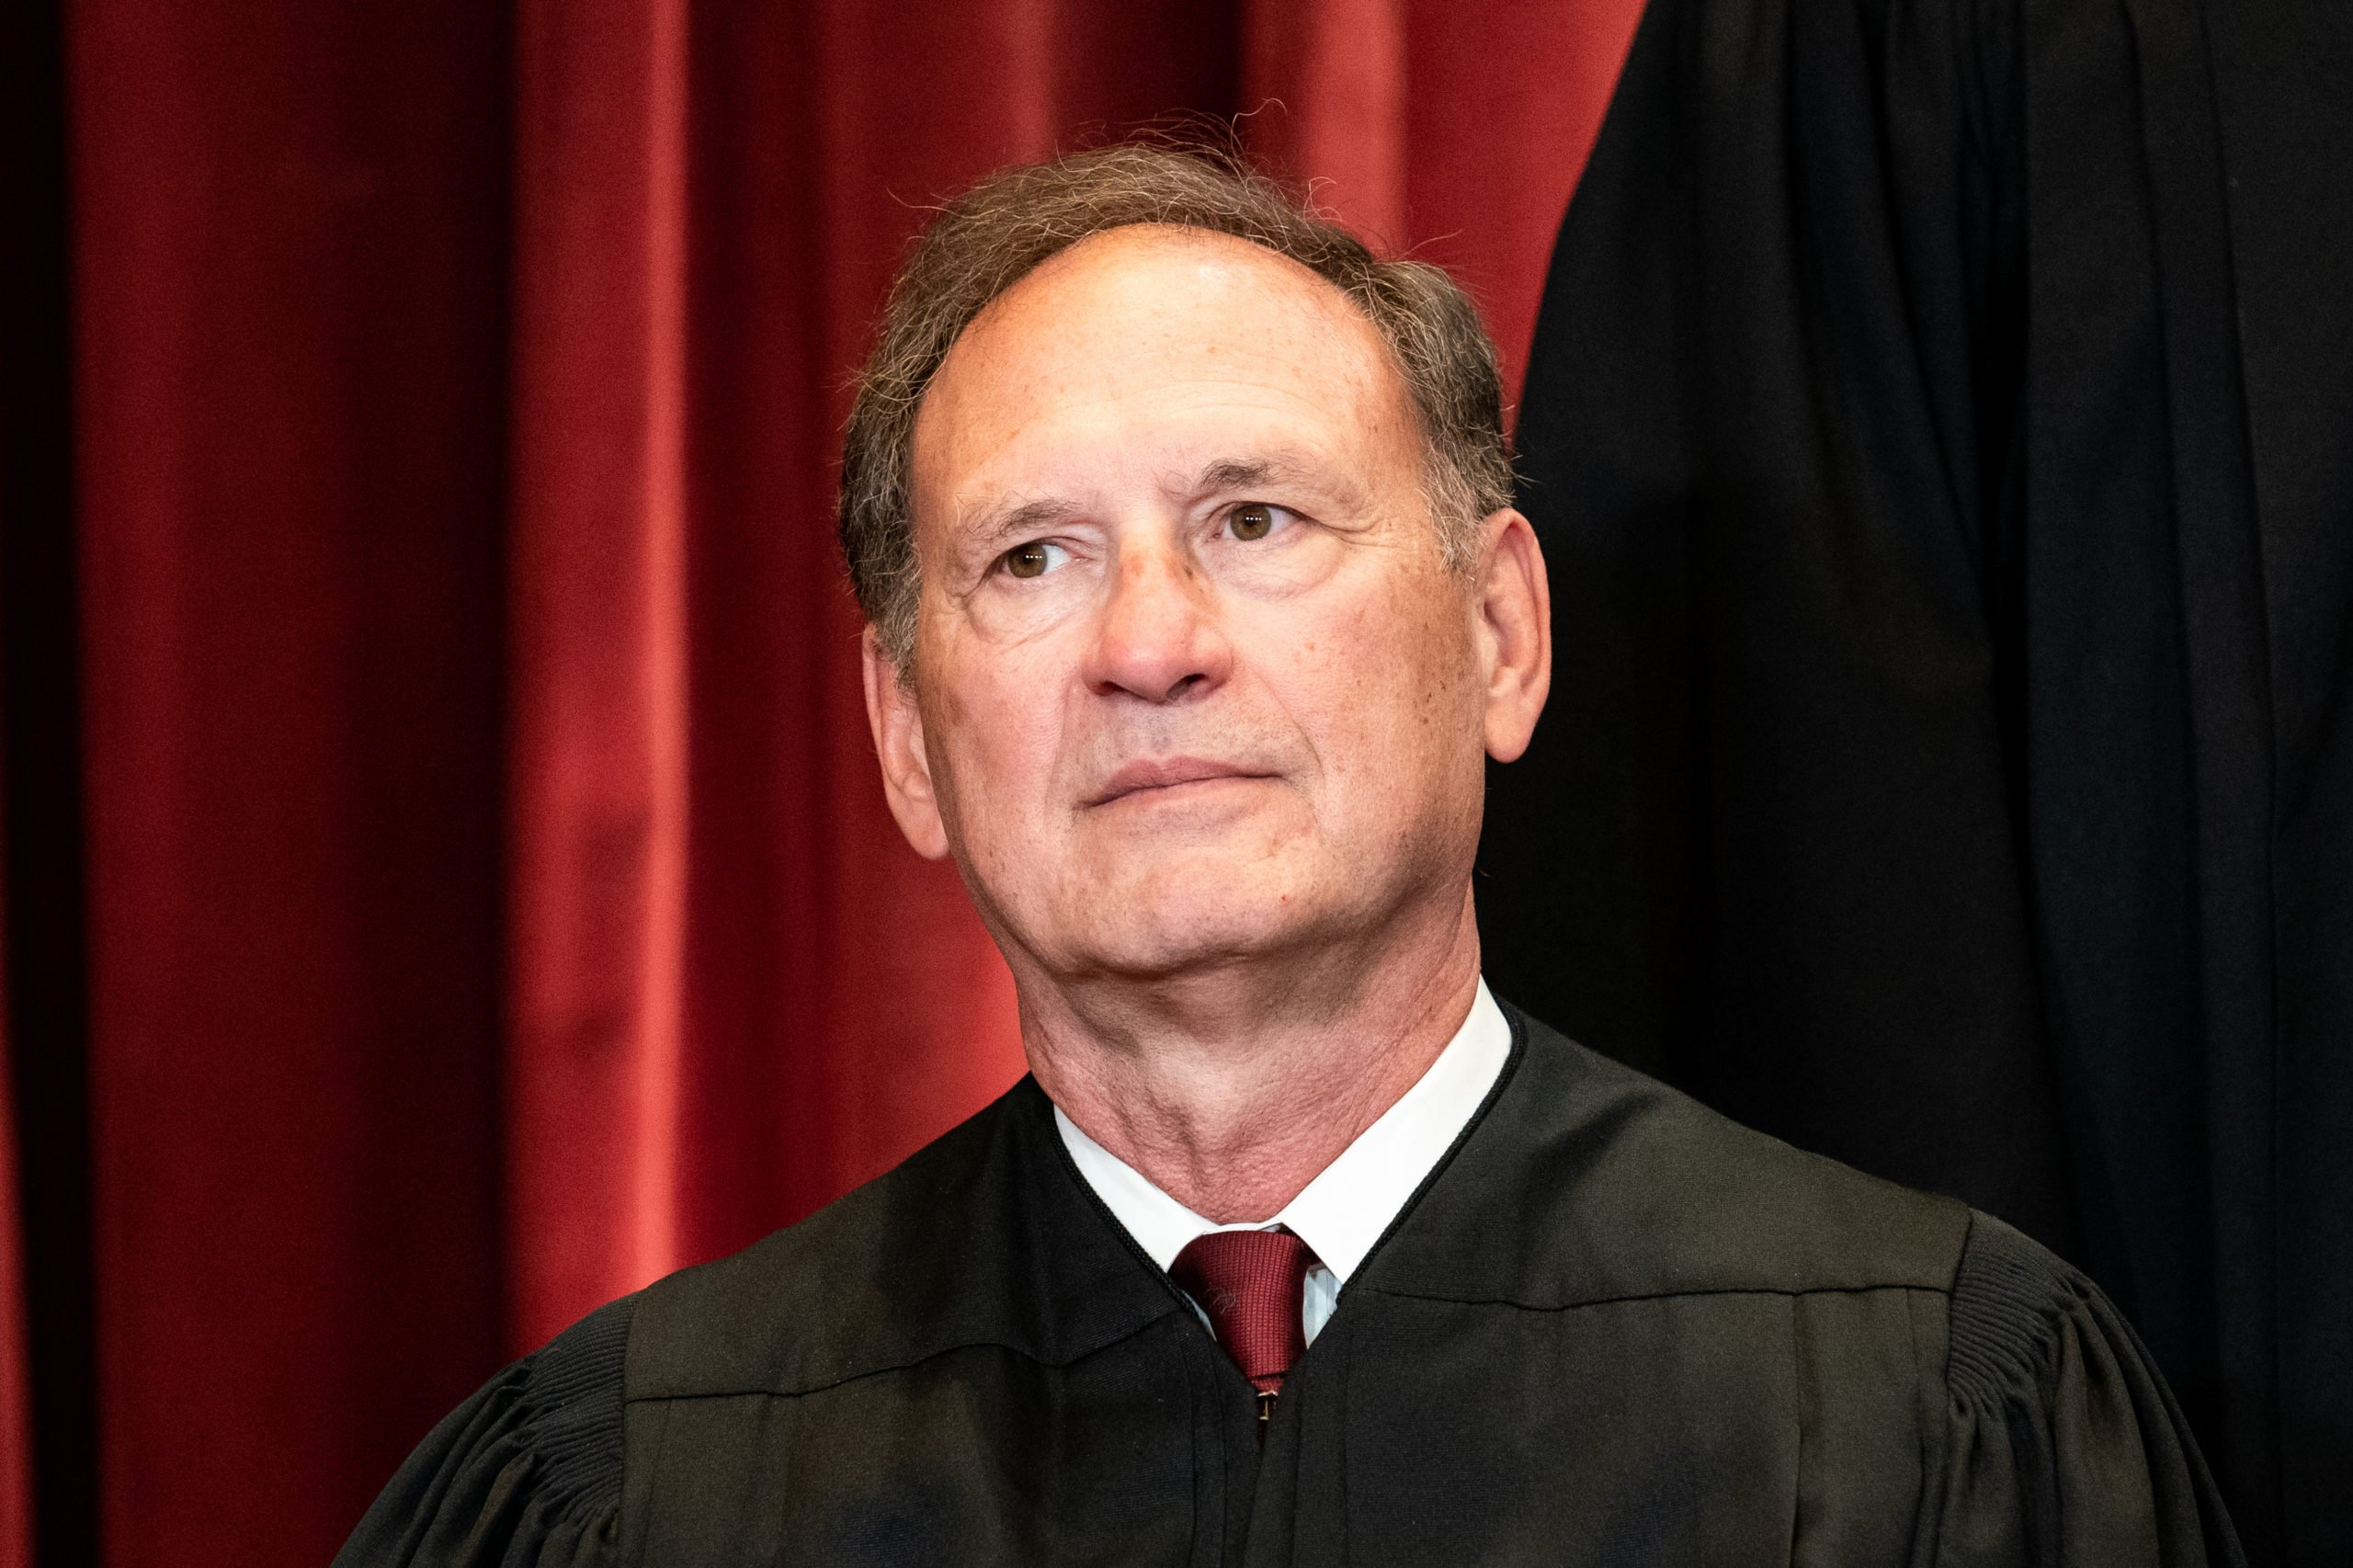 WASHINGTON, DC - APRIL 23: Associate Justice Samuel Alito sits during a group photo of the Justices at the Supreme Court in Washington, DC on April 23, 2021. (Photo by Erin Schaff-Pool/Getty Images)